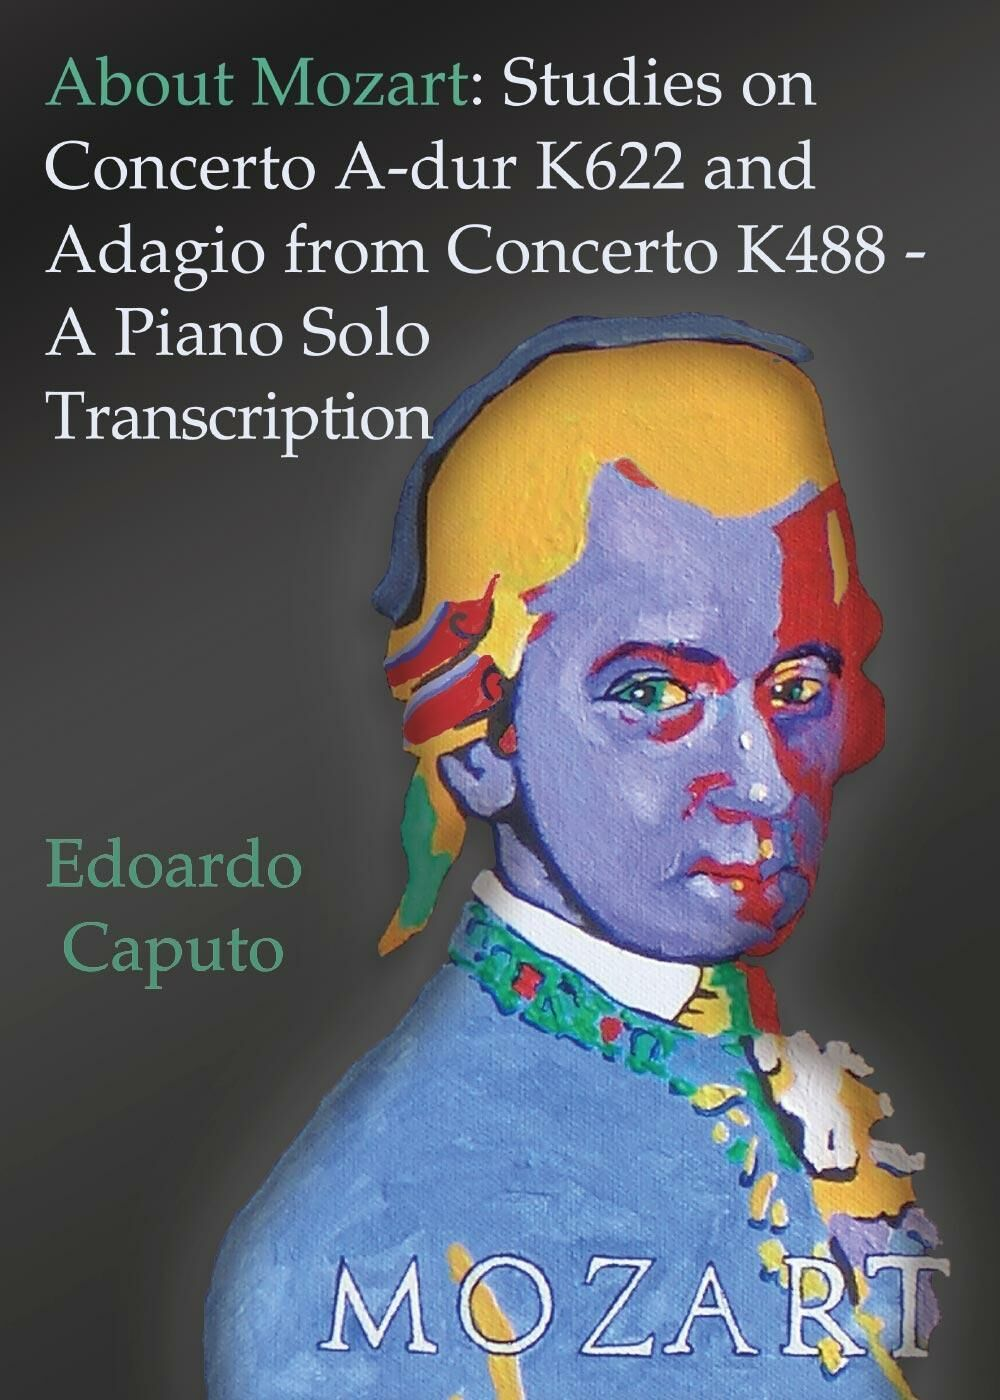 About Mozart: Studies on concerto A-dur K622 and adagio from concerto K488. A piano solo transcription